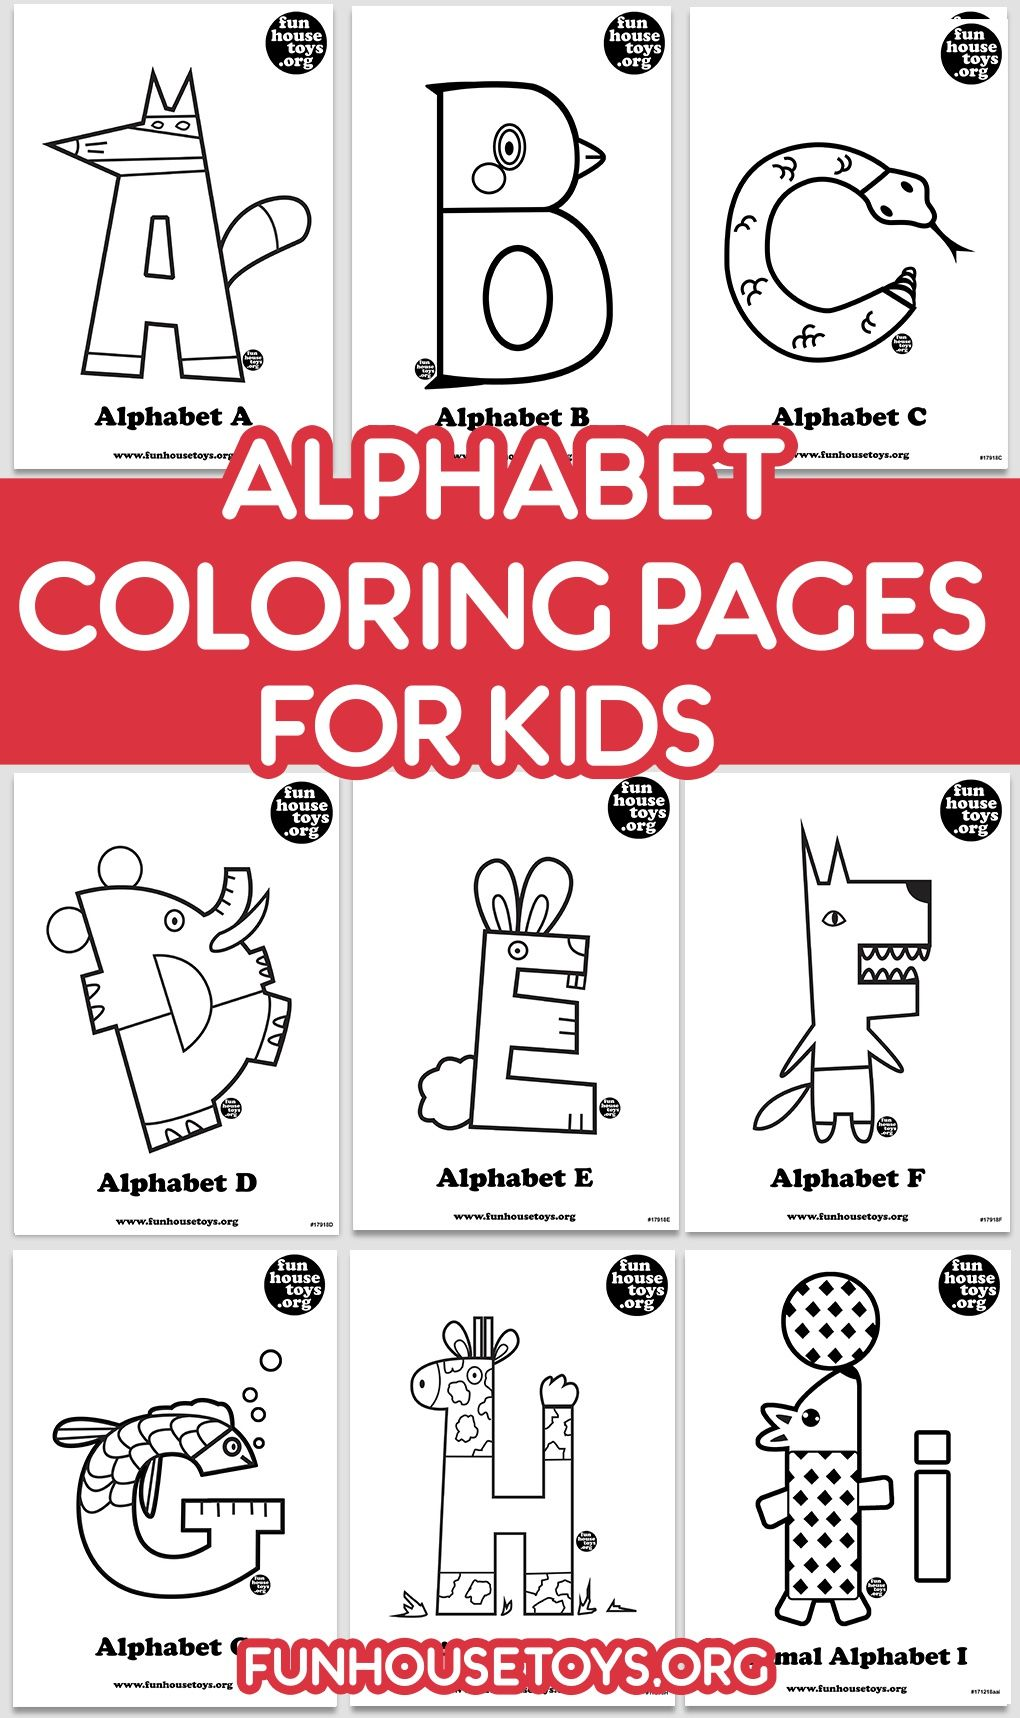 Alphabet Coloring Pages For Kids To Print And Download Alphabet Coloring Pages Alphabet Coloring Coloring Pages For Kids